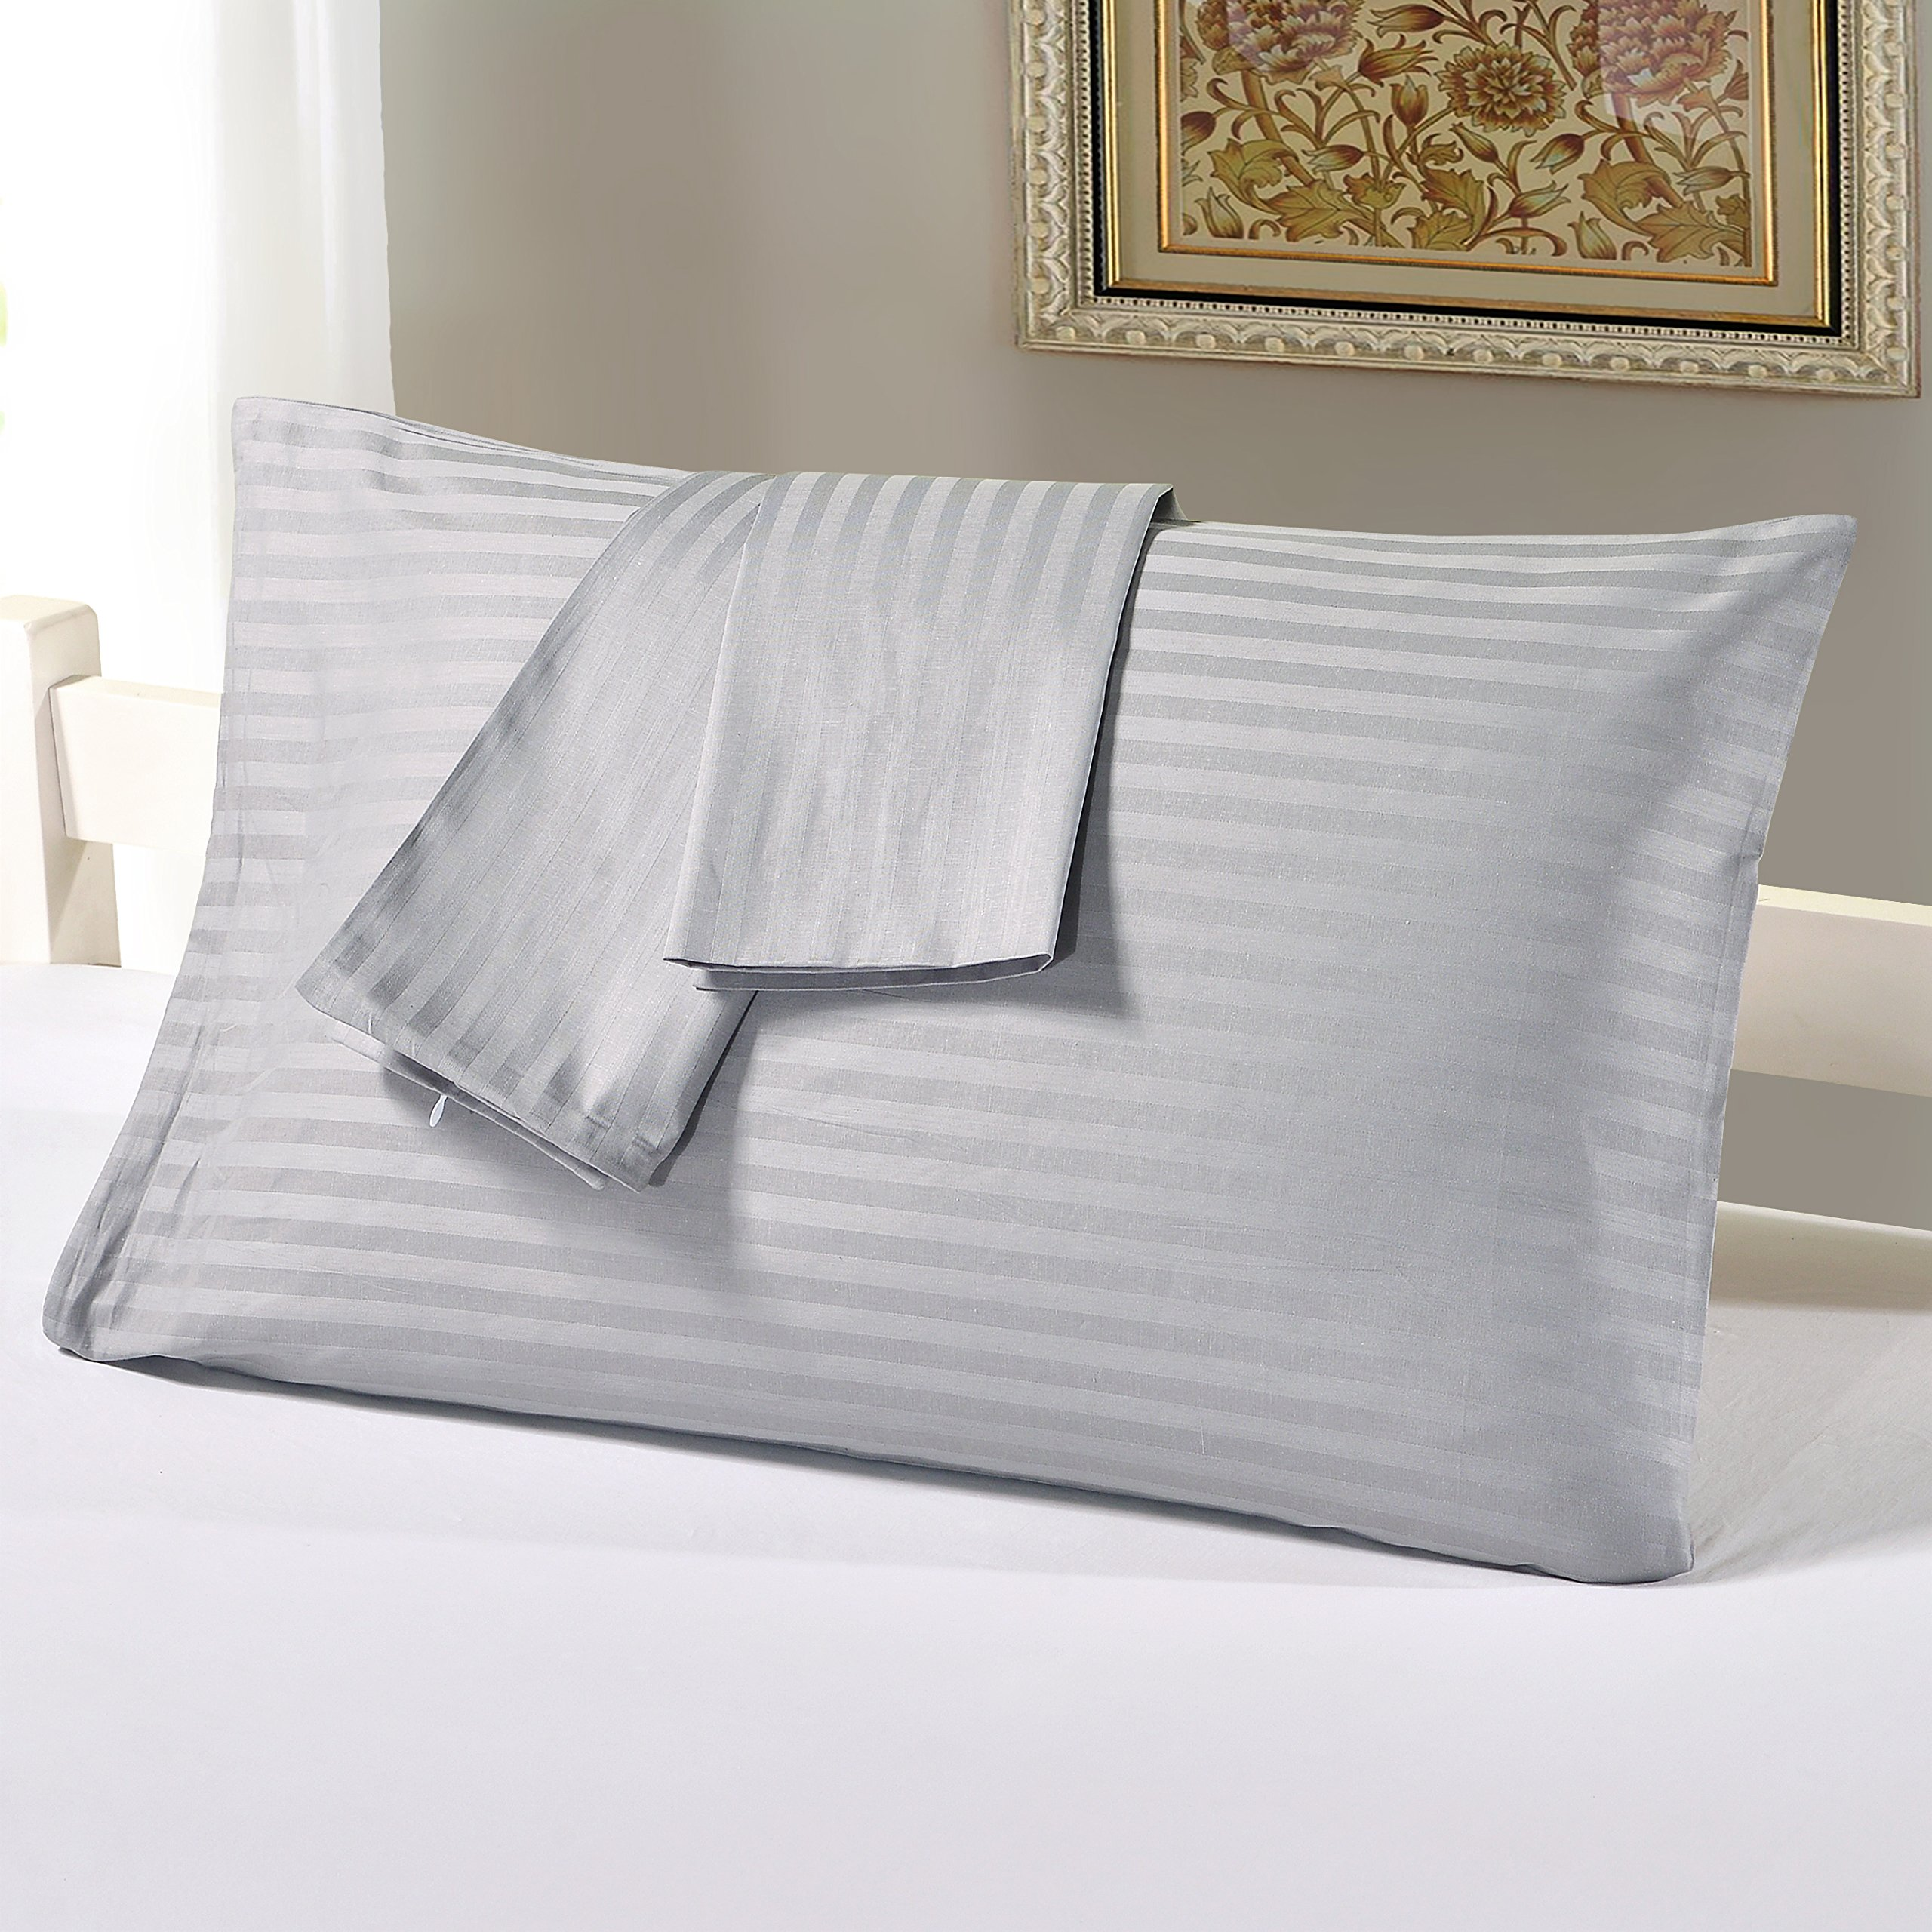 YOUSA Breathable Pillowcases Simple and Durable Pillow Cover with Zipper for Everyday Use Set of 2,Gray,King by YOUSA